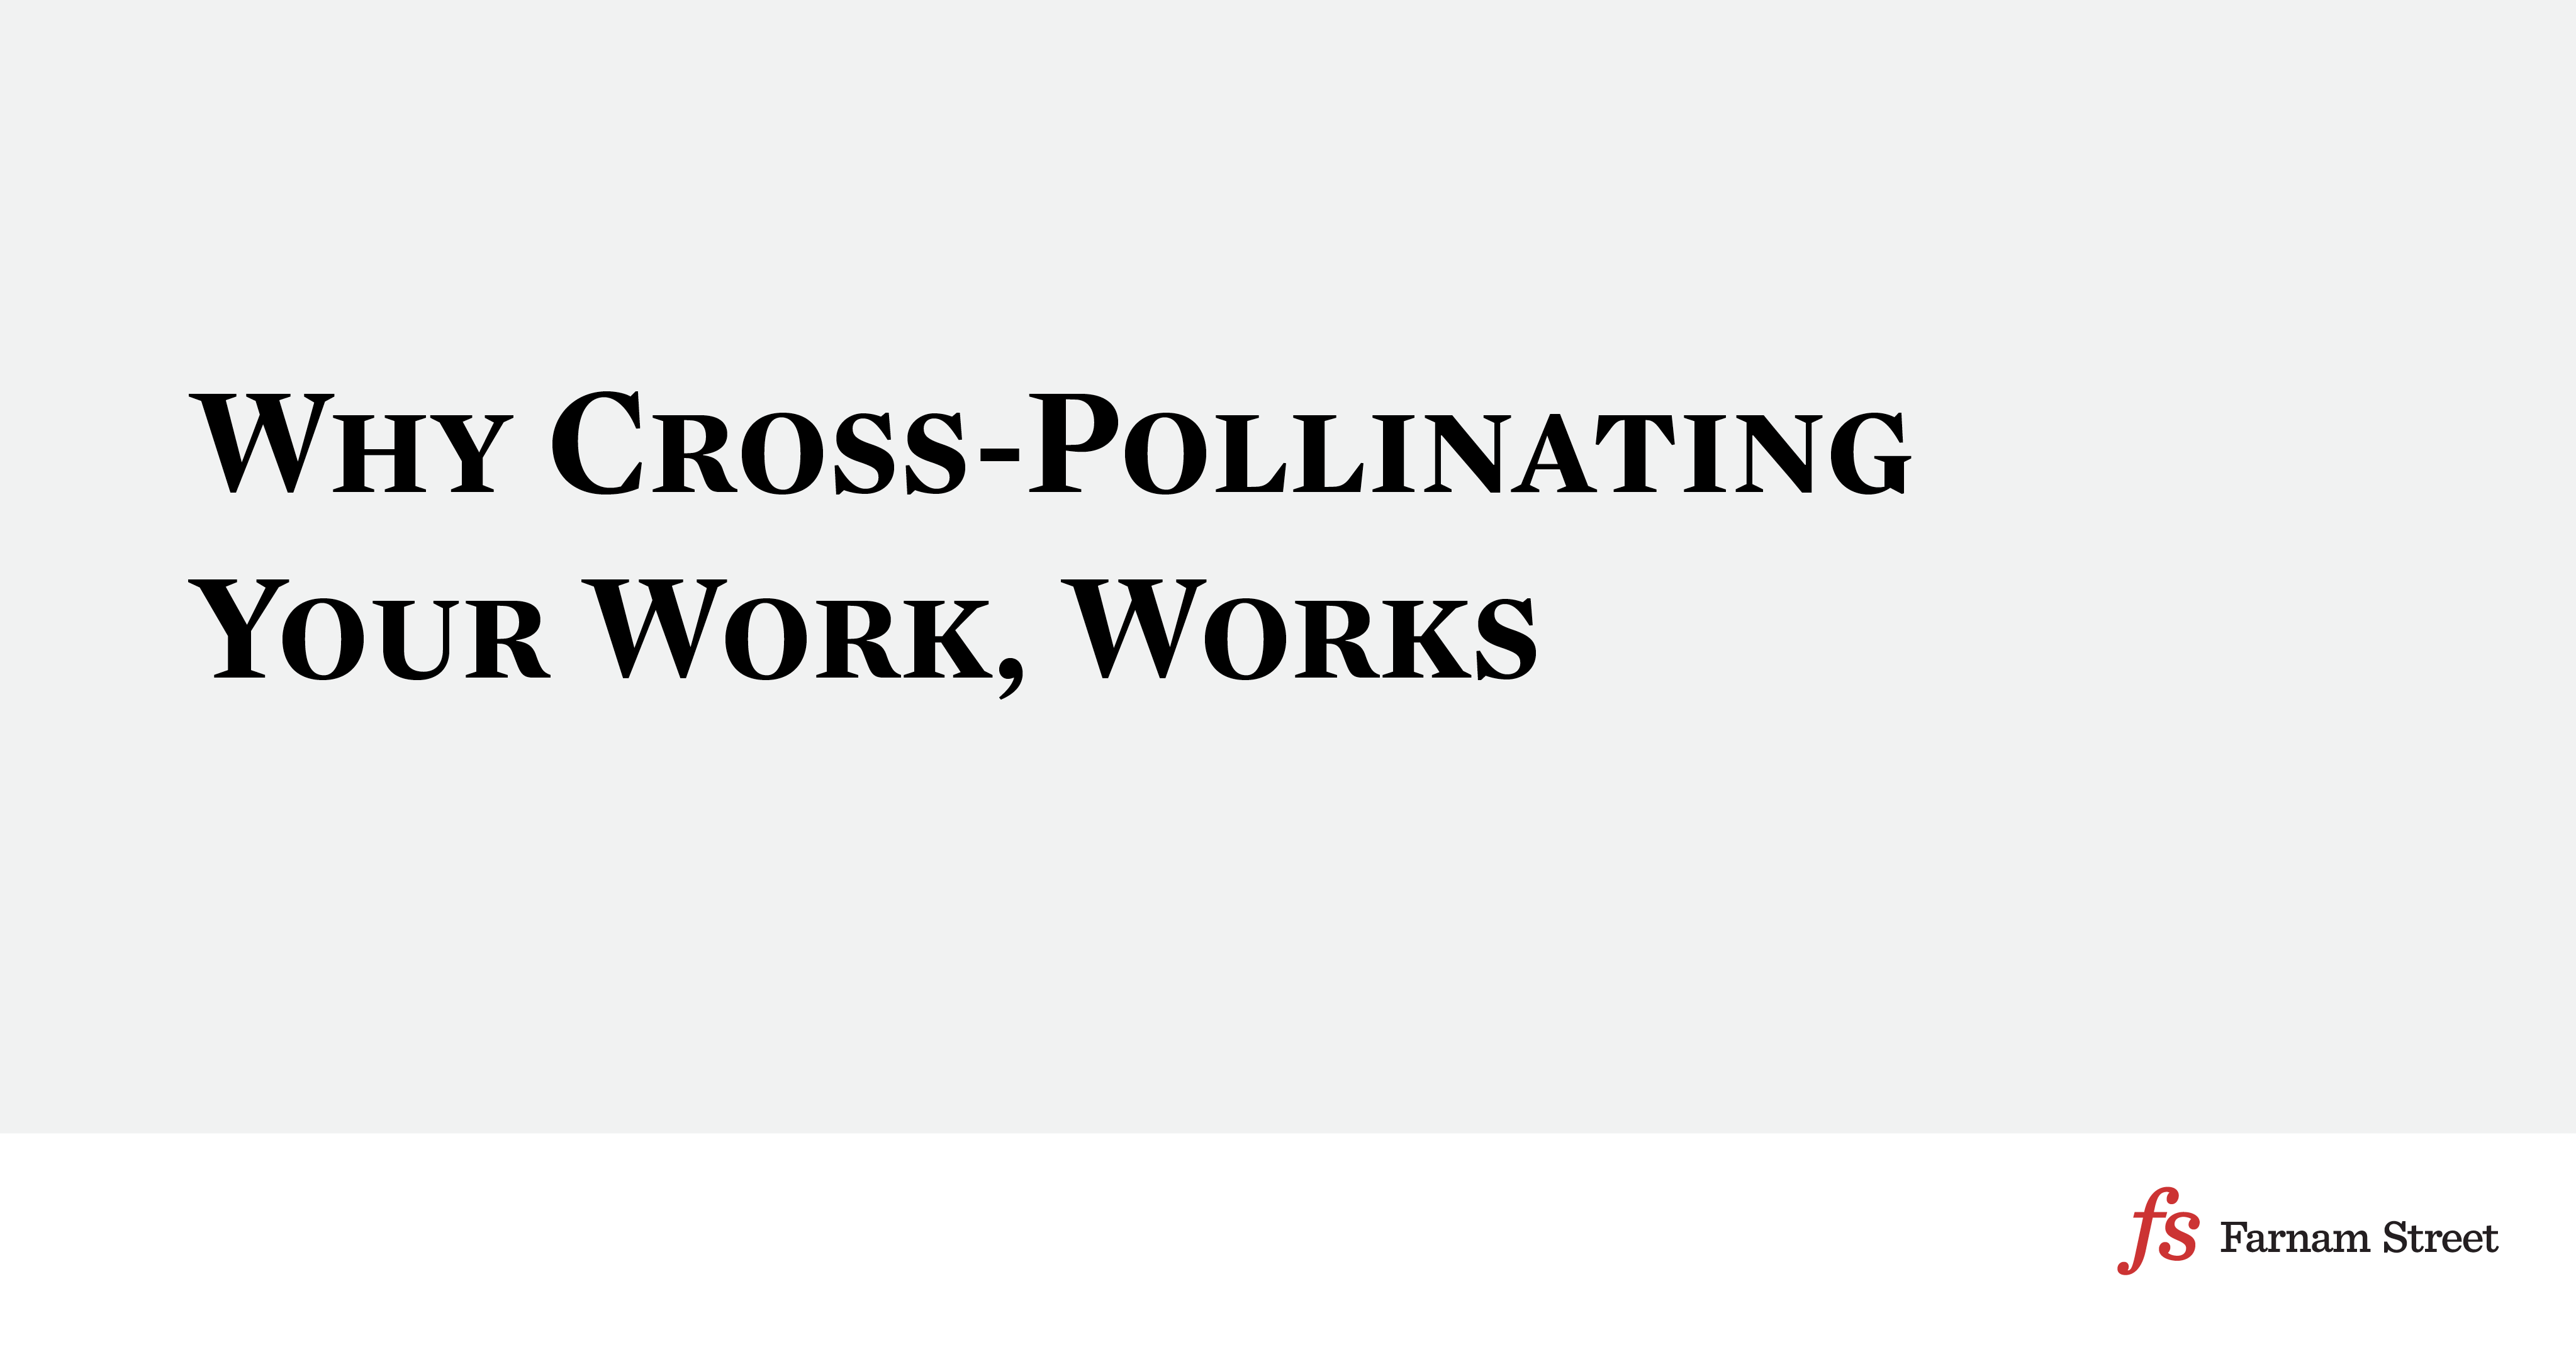 Why Cross-Pollinating Your Work, Works